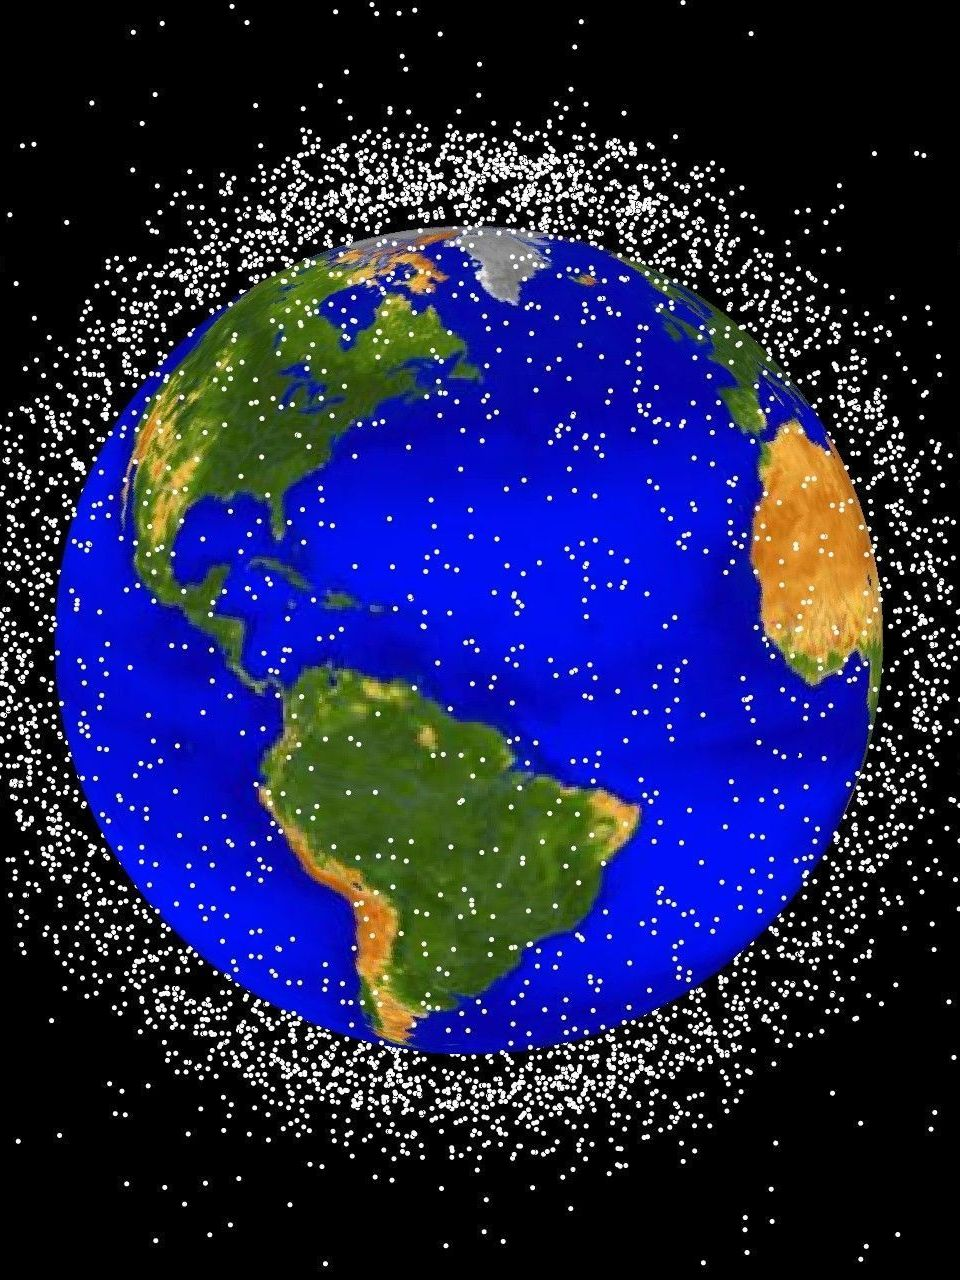 U.S. 'Space Fence' Will Cease To Operate, Site Says